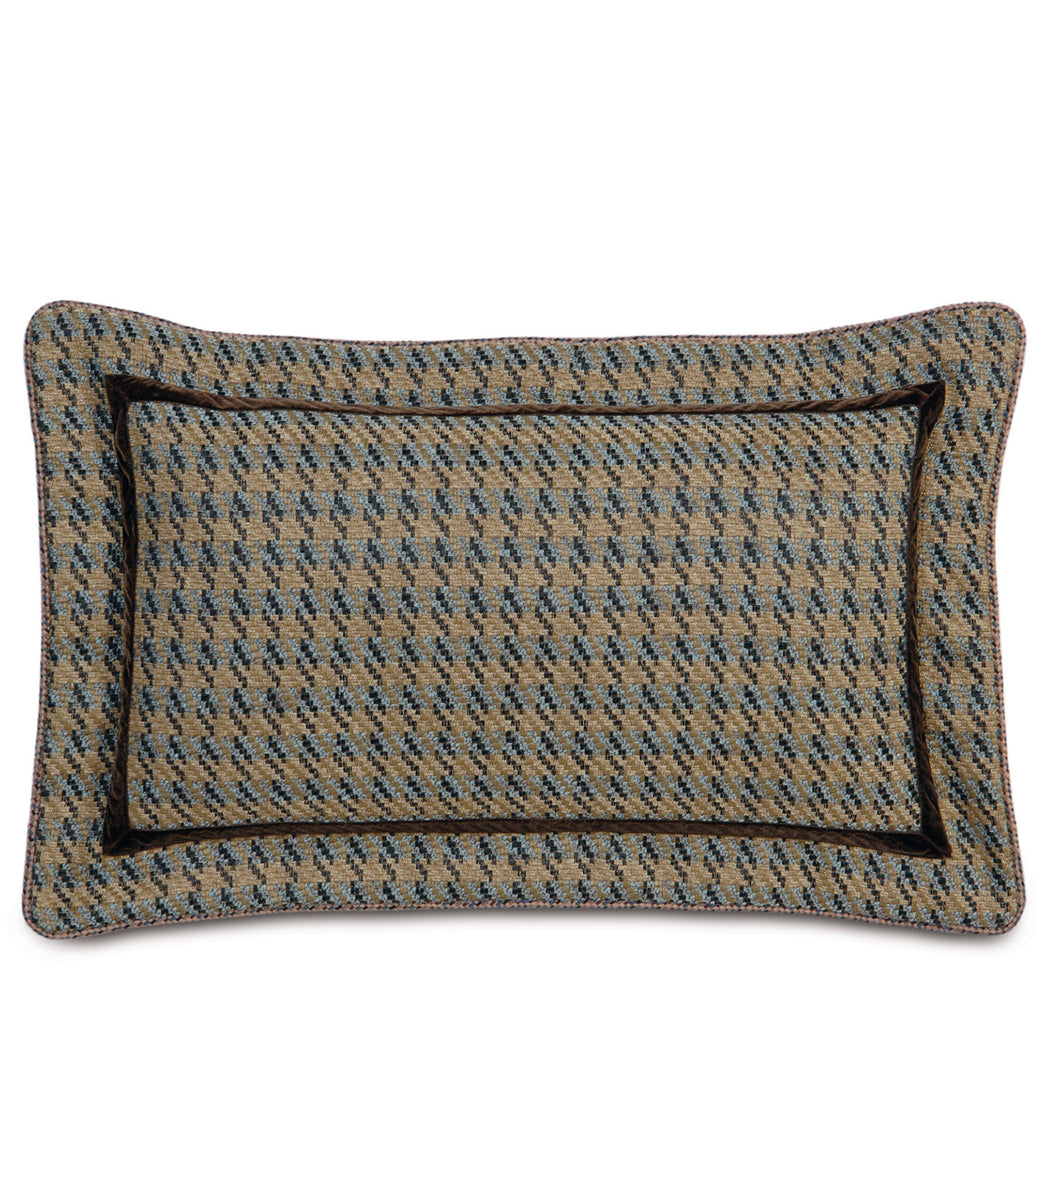 Powell Textured  Houndstooth Pillow in Multicolored 13